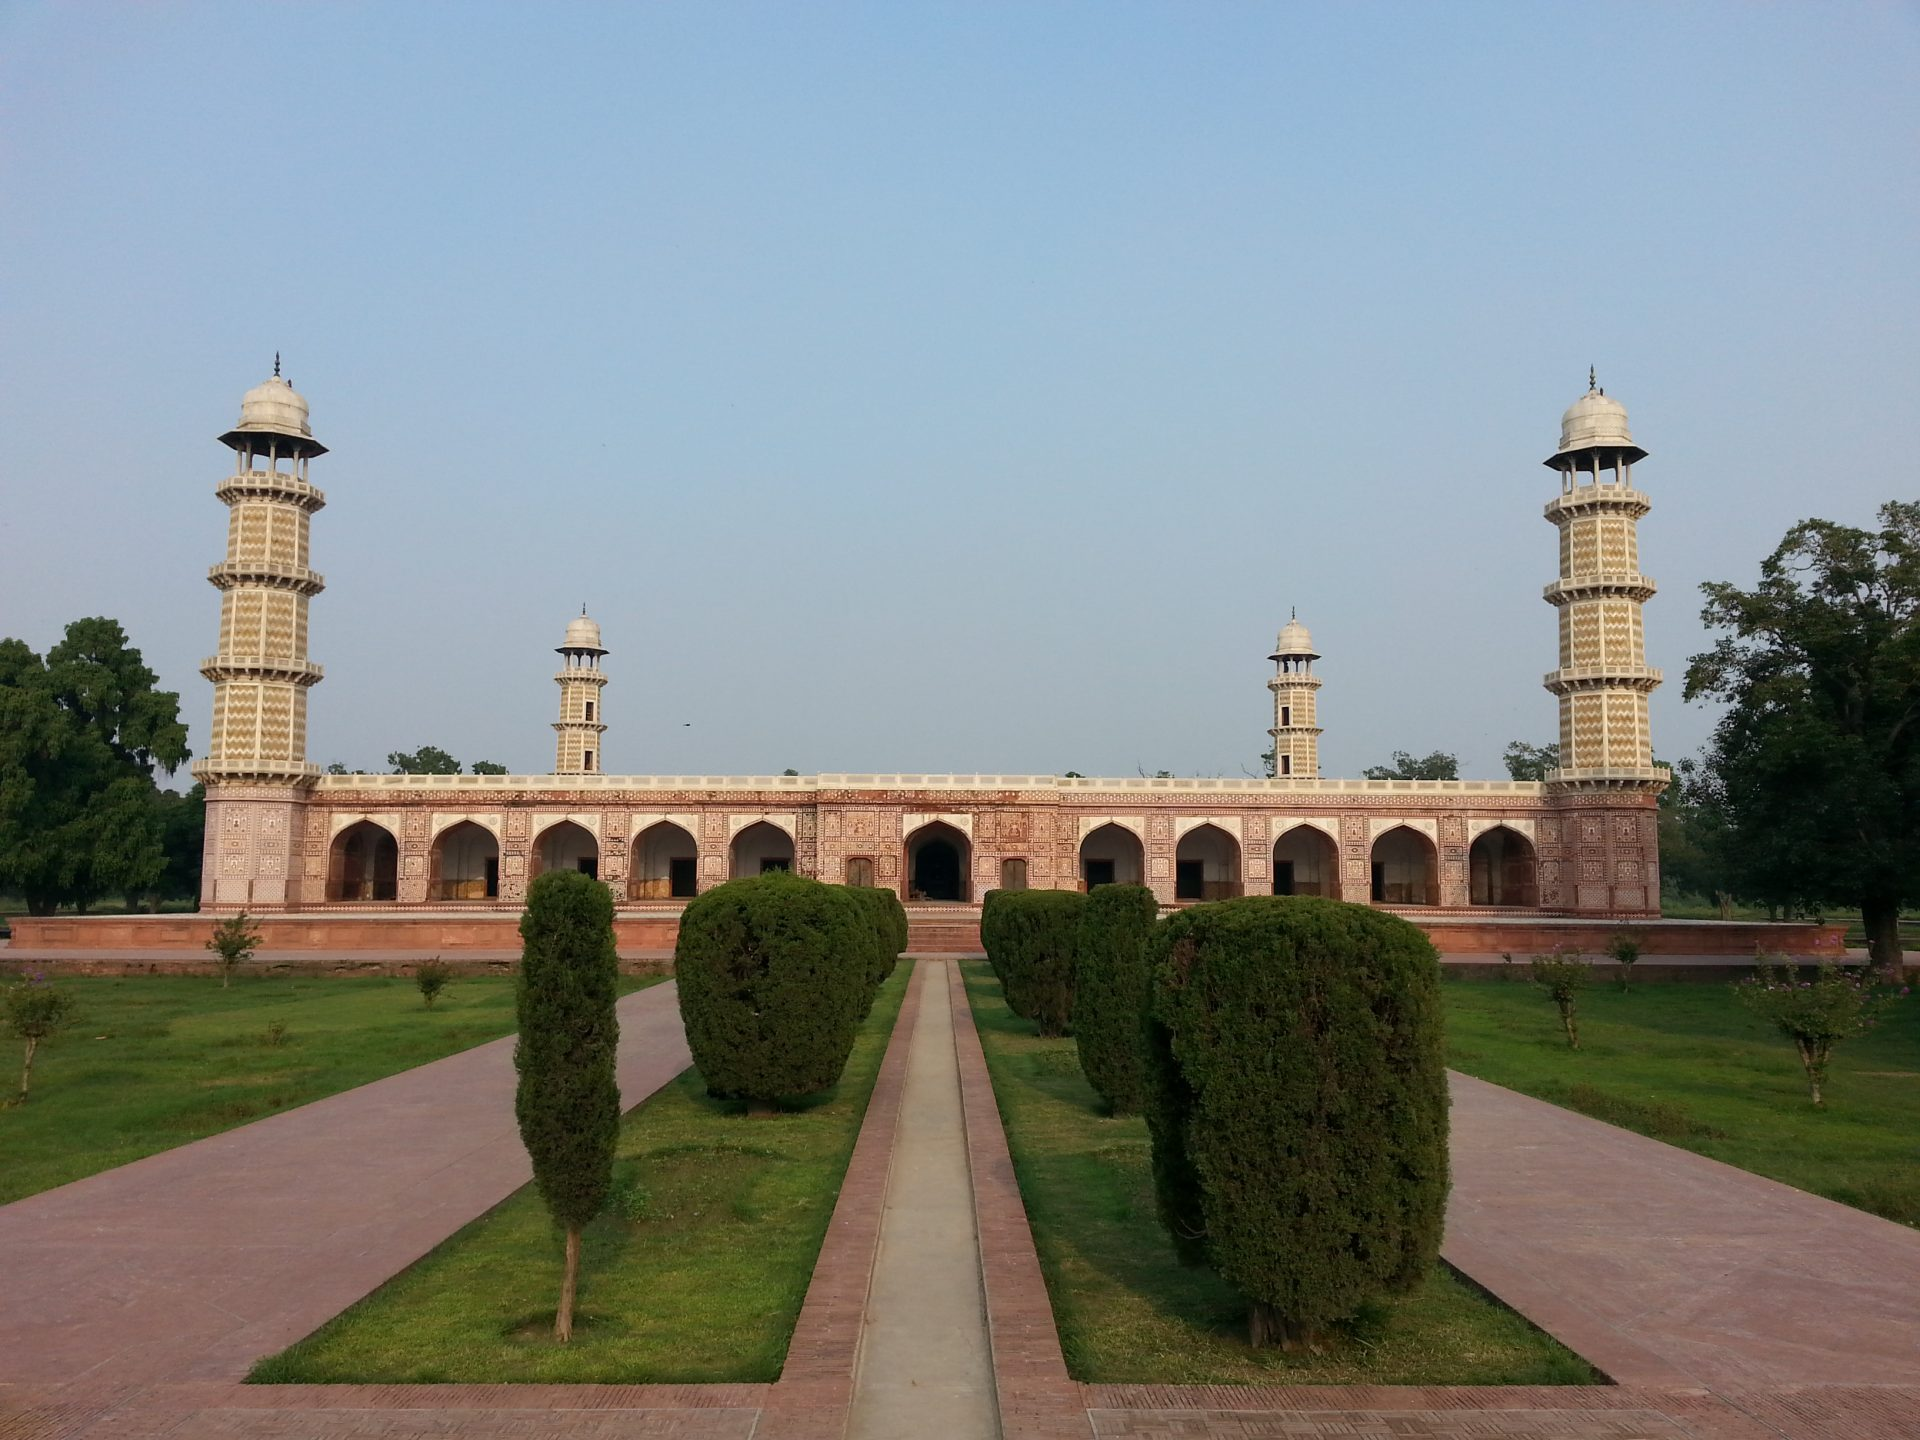 Jahangir's tomb in lahore